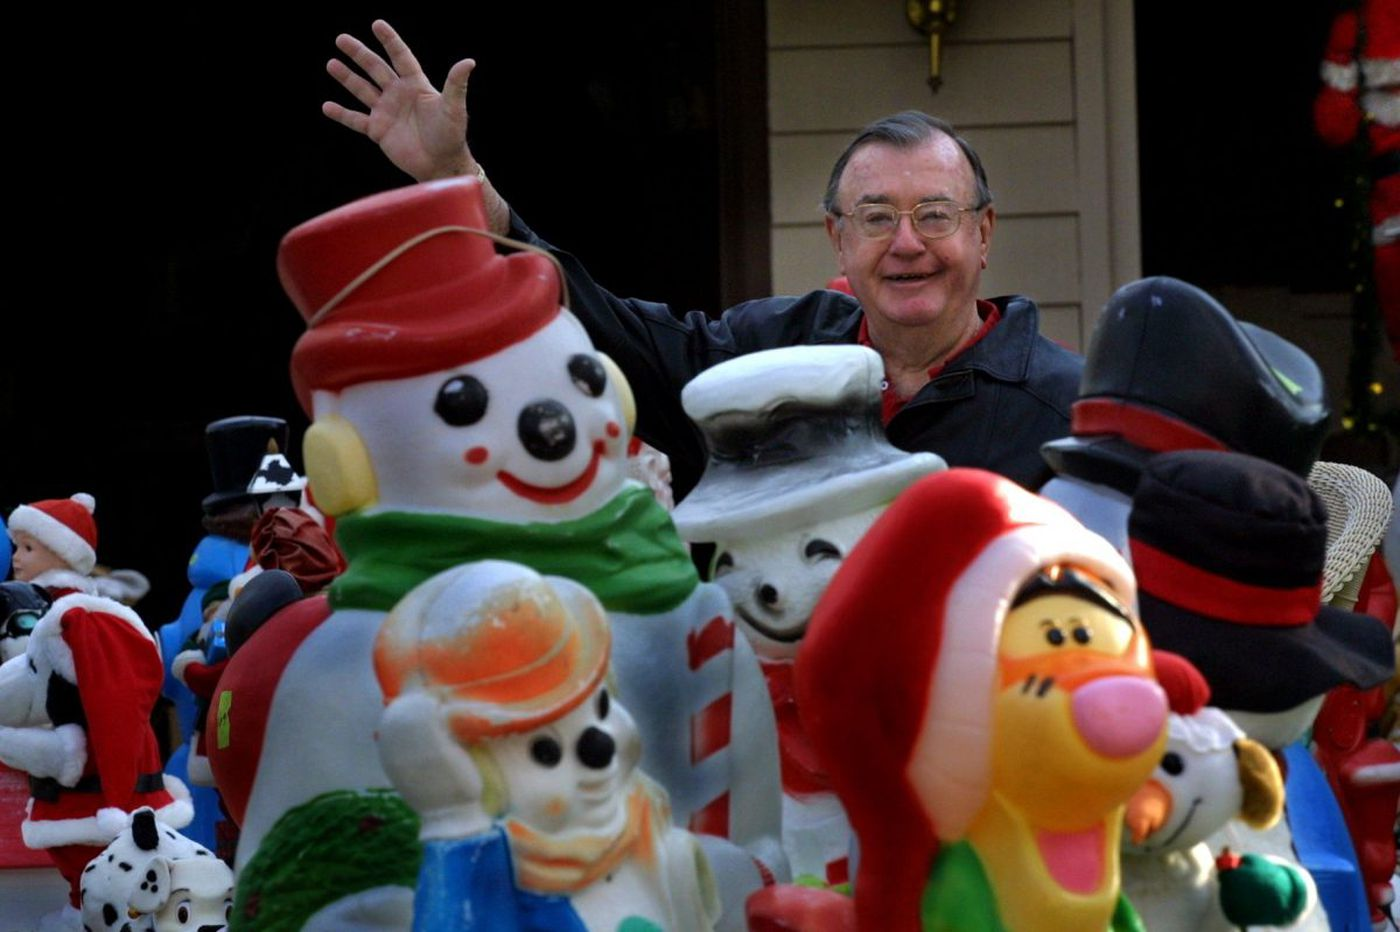 Cherry Hill's 'Dr. Christmas' dies just shy of his favorite holiday